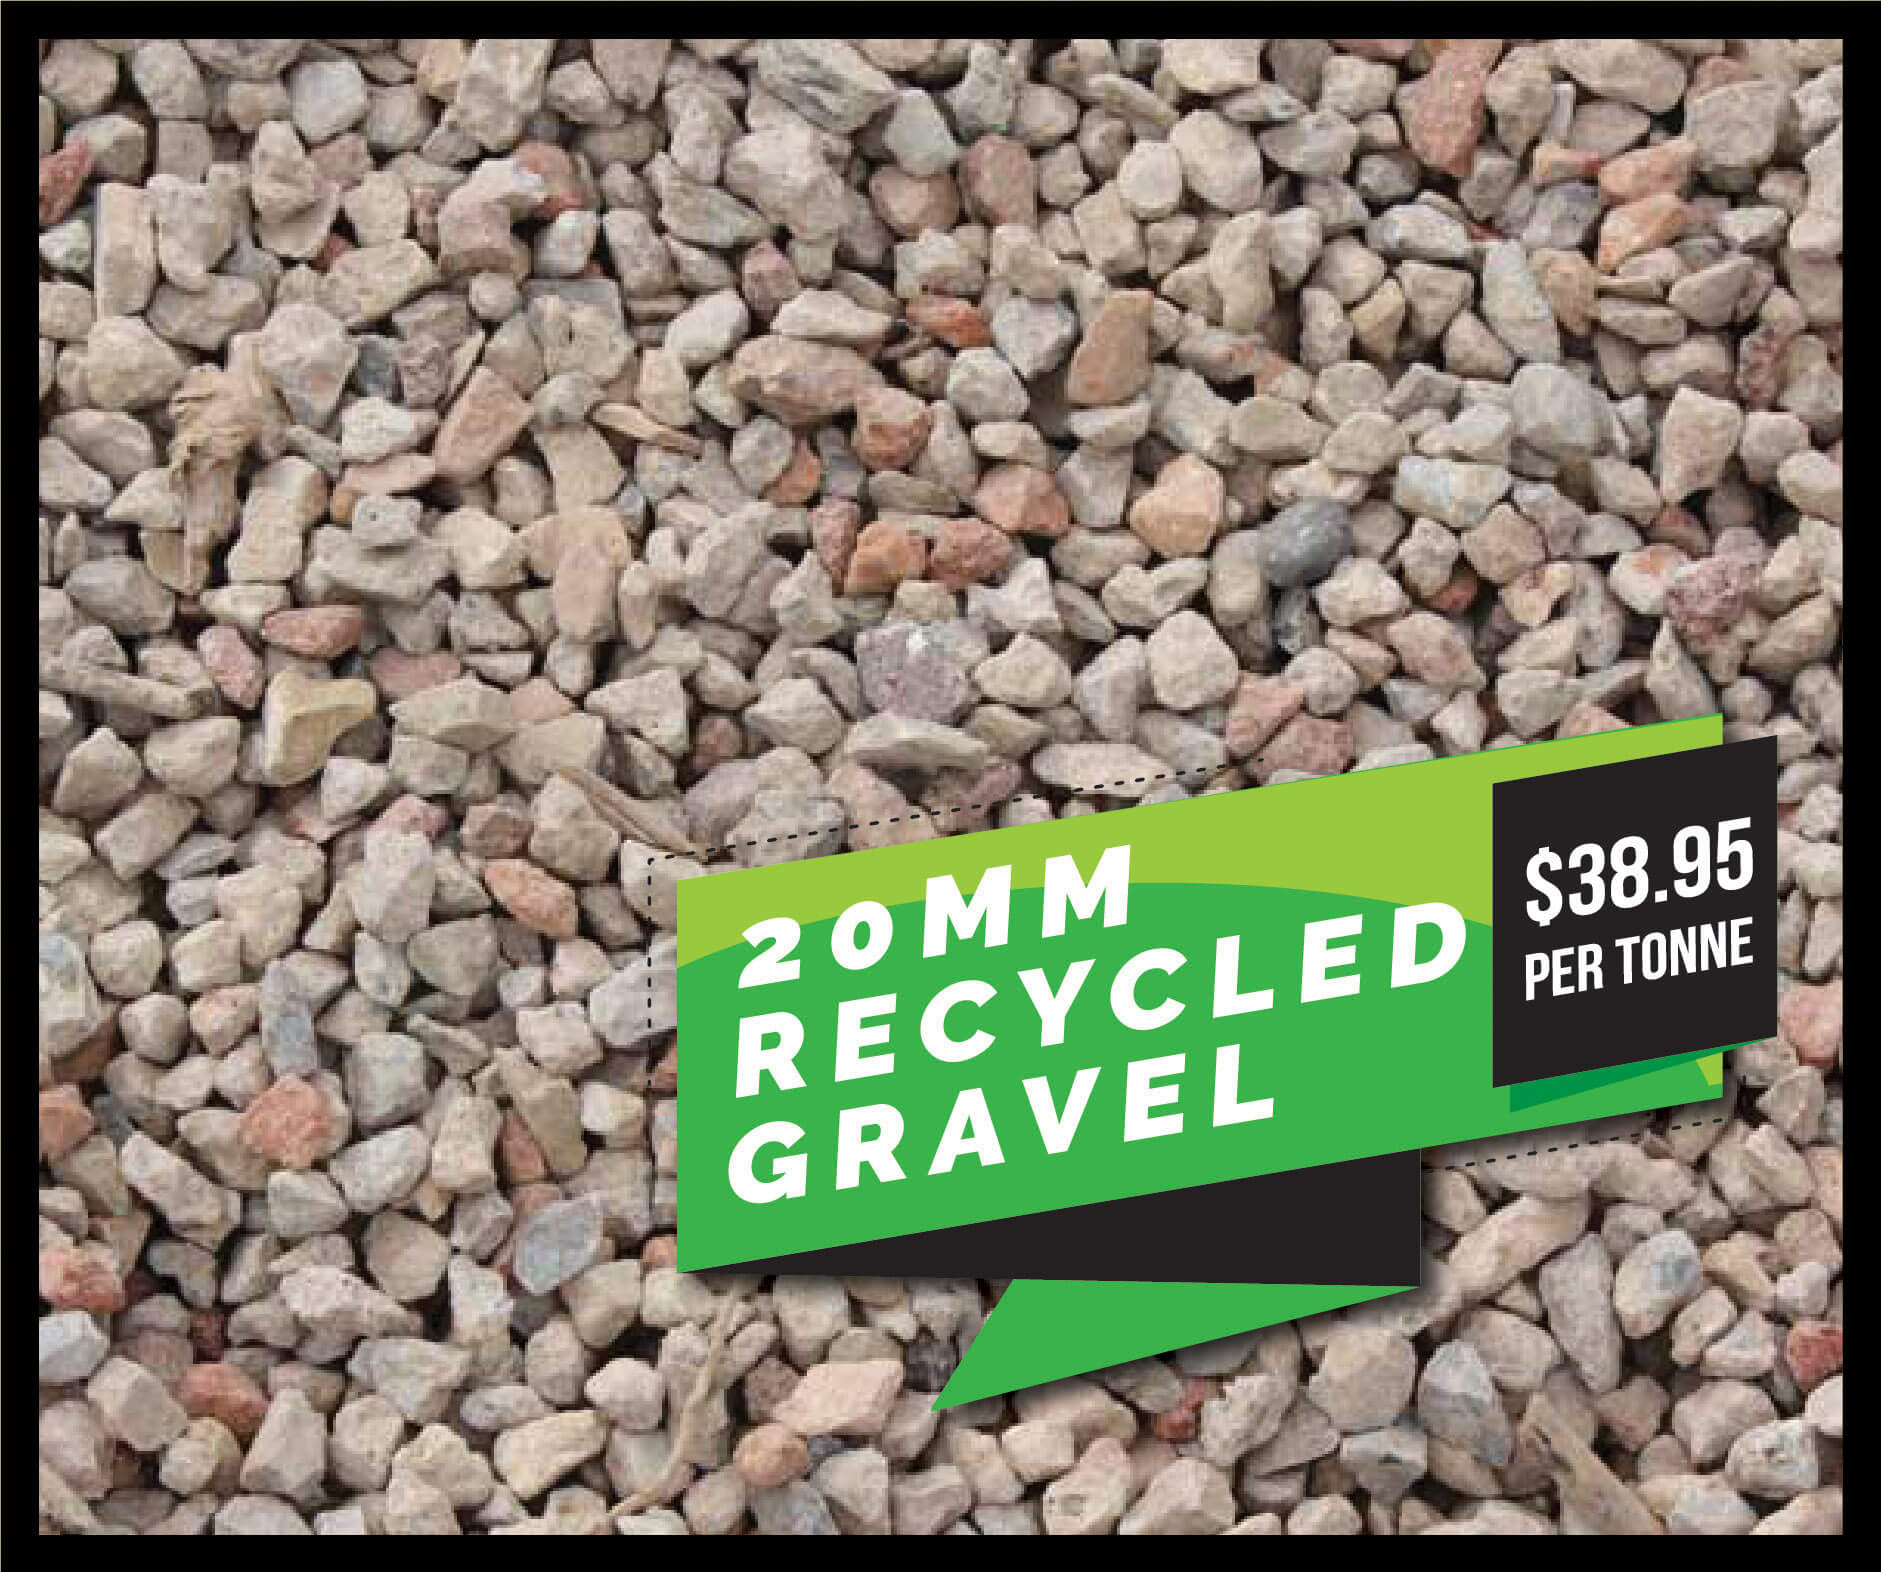 20mm recycled gravel on sale